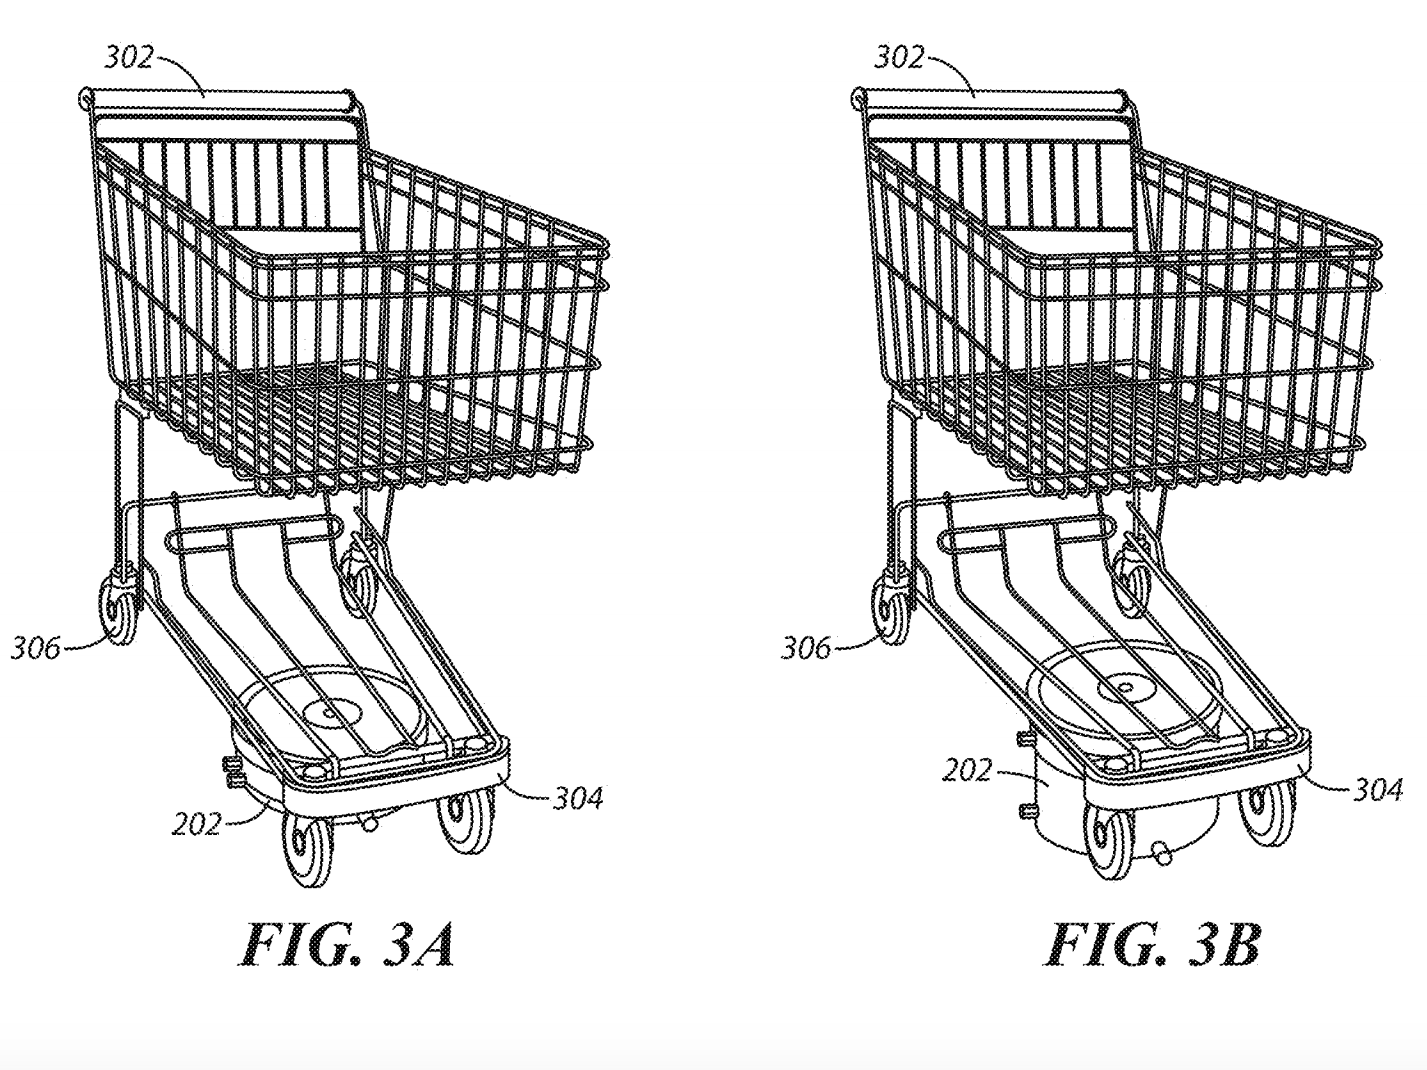 This illustration shows that Walmart's self-driving shopping carts will have motorized transport units on the bottom of normal carts.